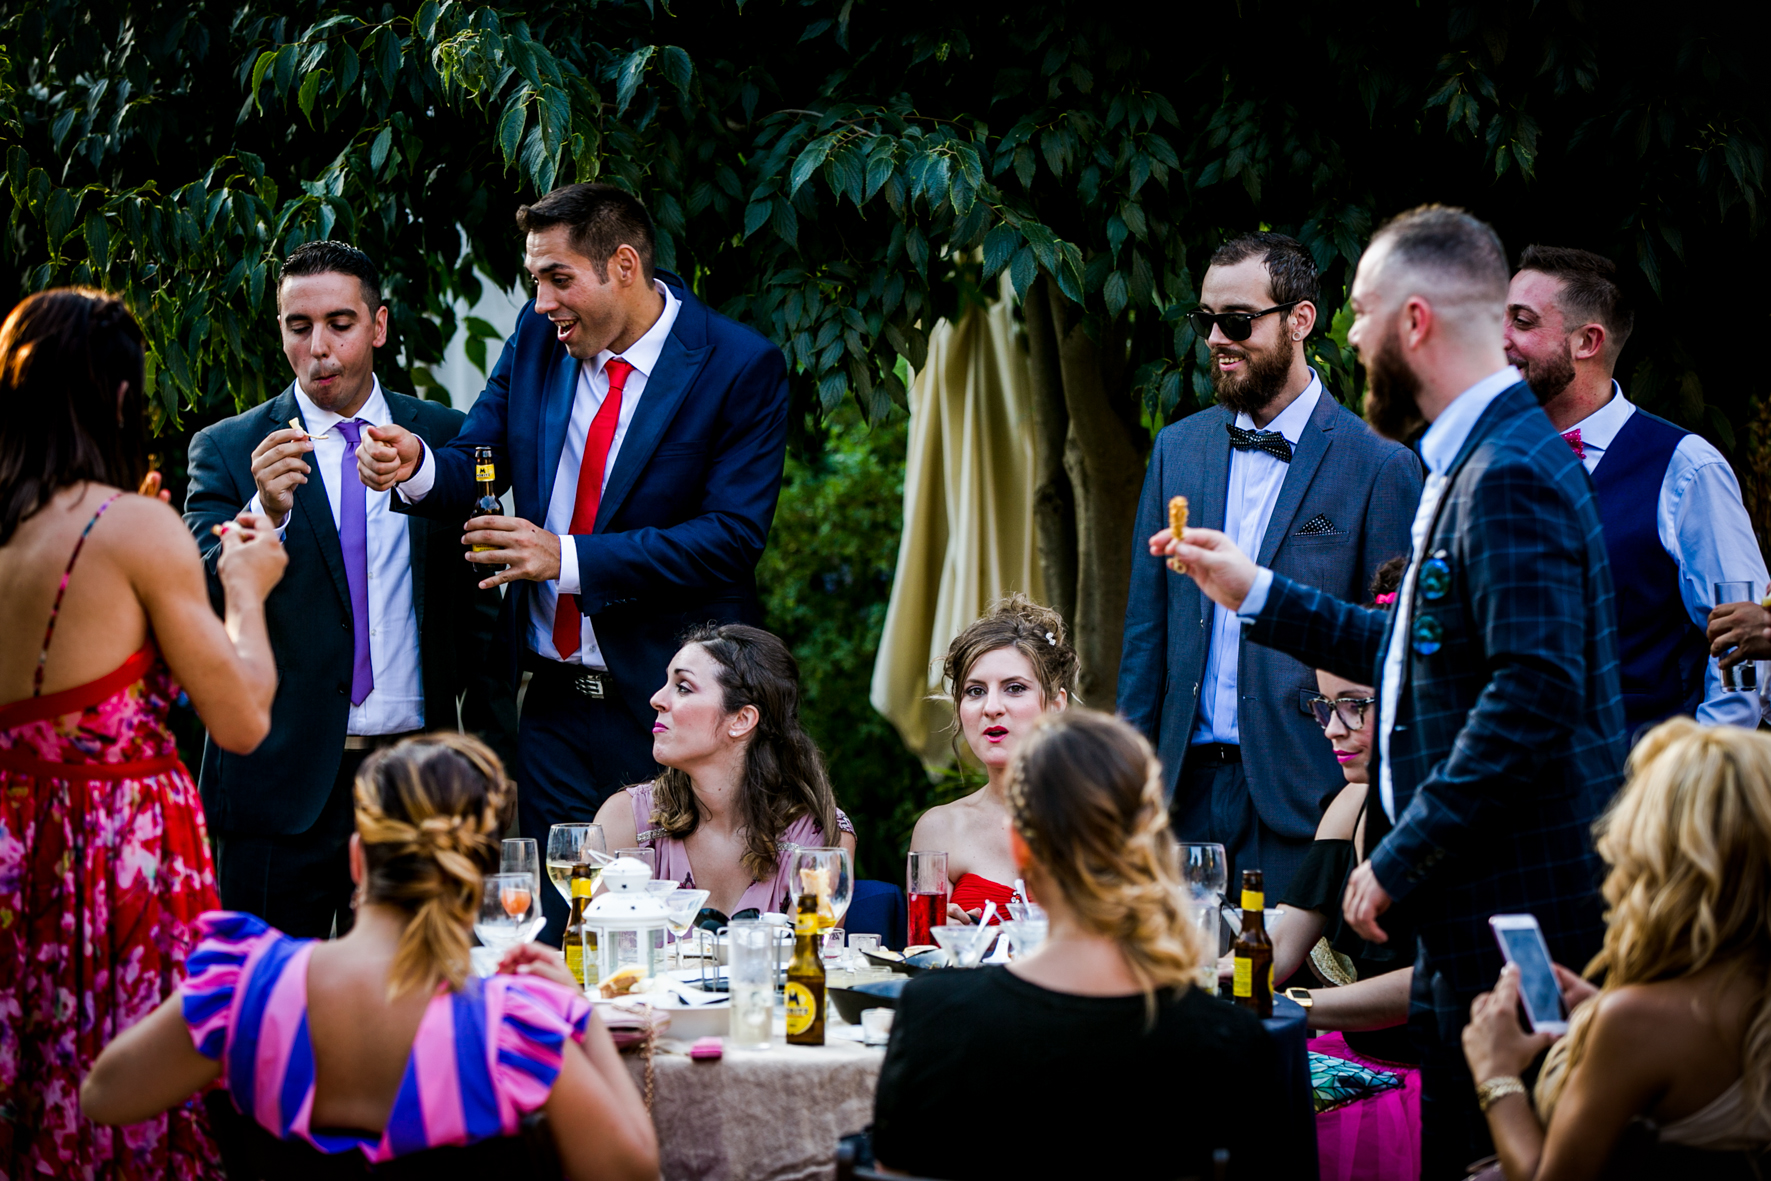 wedding el mas de can riera, wedding barcelona, boda en hotel miramar, wedding center of barcelona, barcelona destination wedding, fotografo de bodas barcelona, barcelona wedding planner, wedding decor barcelona, destination wedding photographer, barcelona WP